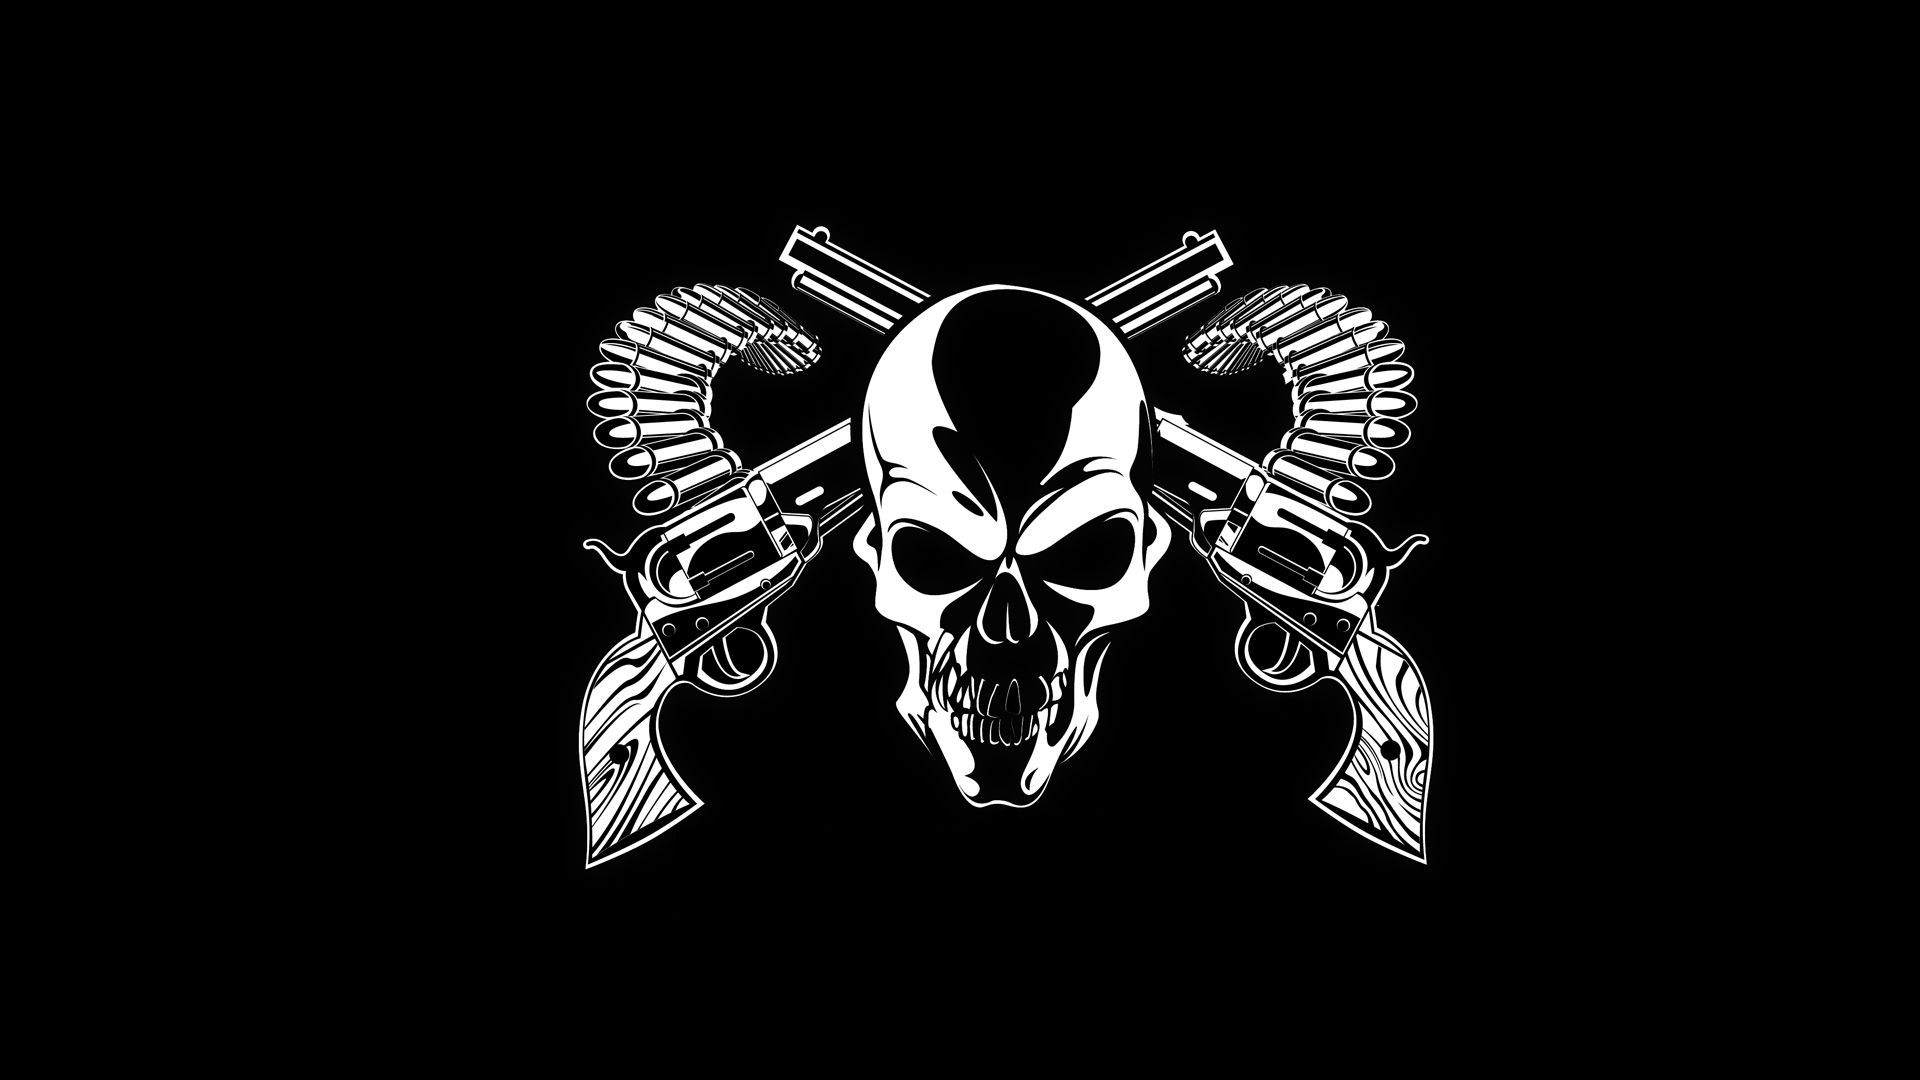 Sick Skull Wallpapers - Top Free Sick Skull Backgrounds